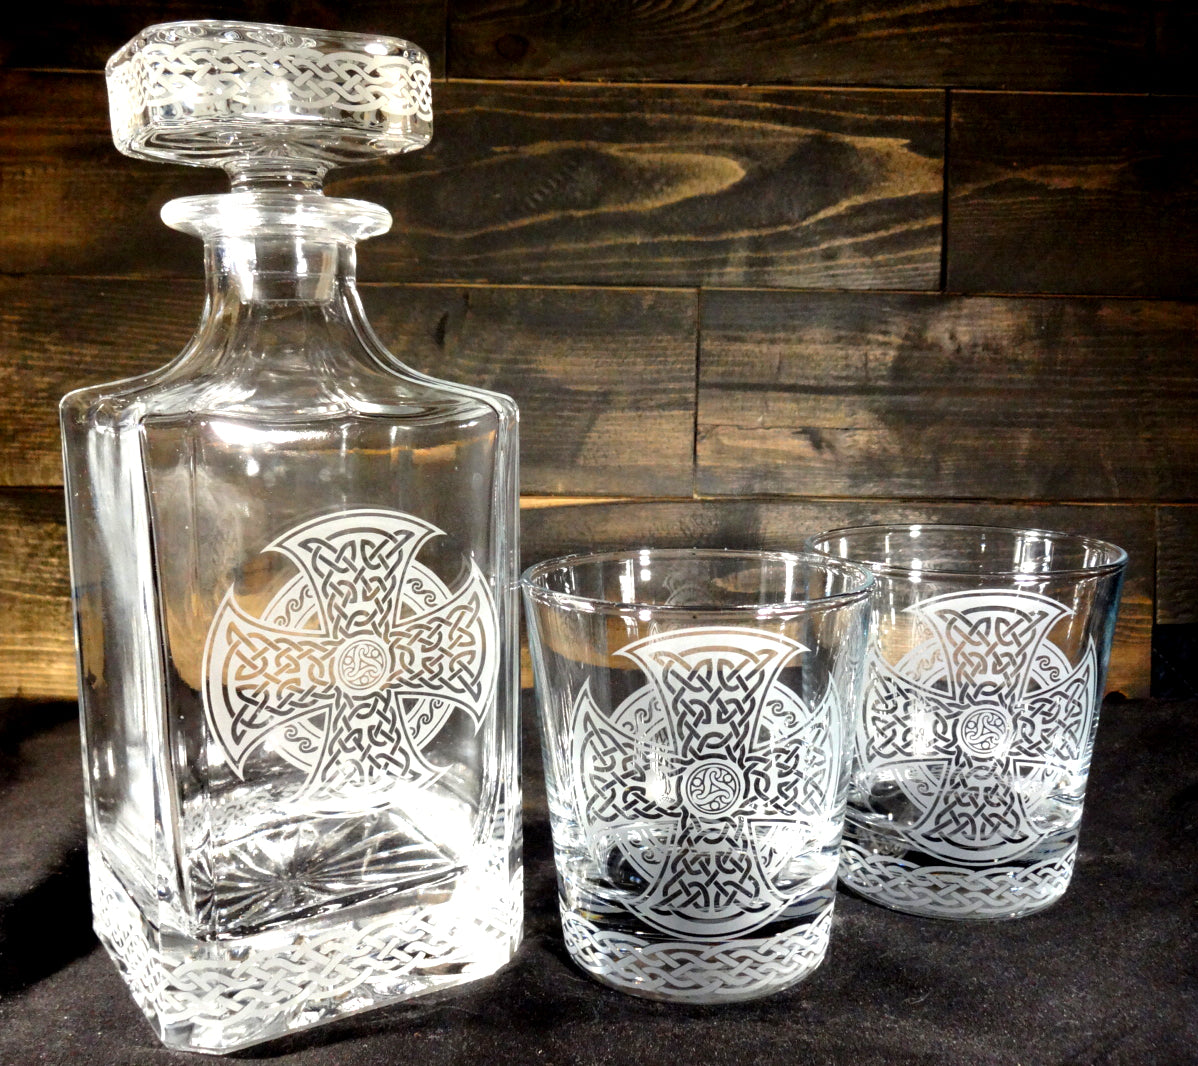 Celtic Knot Etched Glass Decanter and Rocks Glasses Set